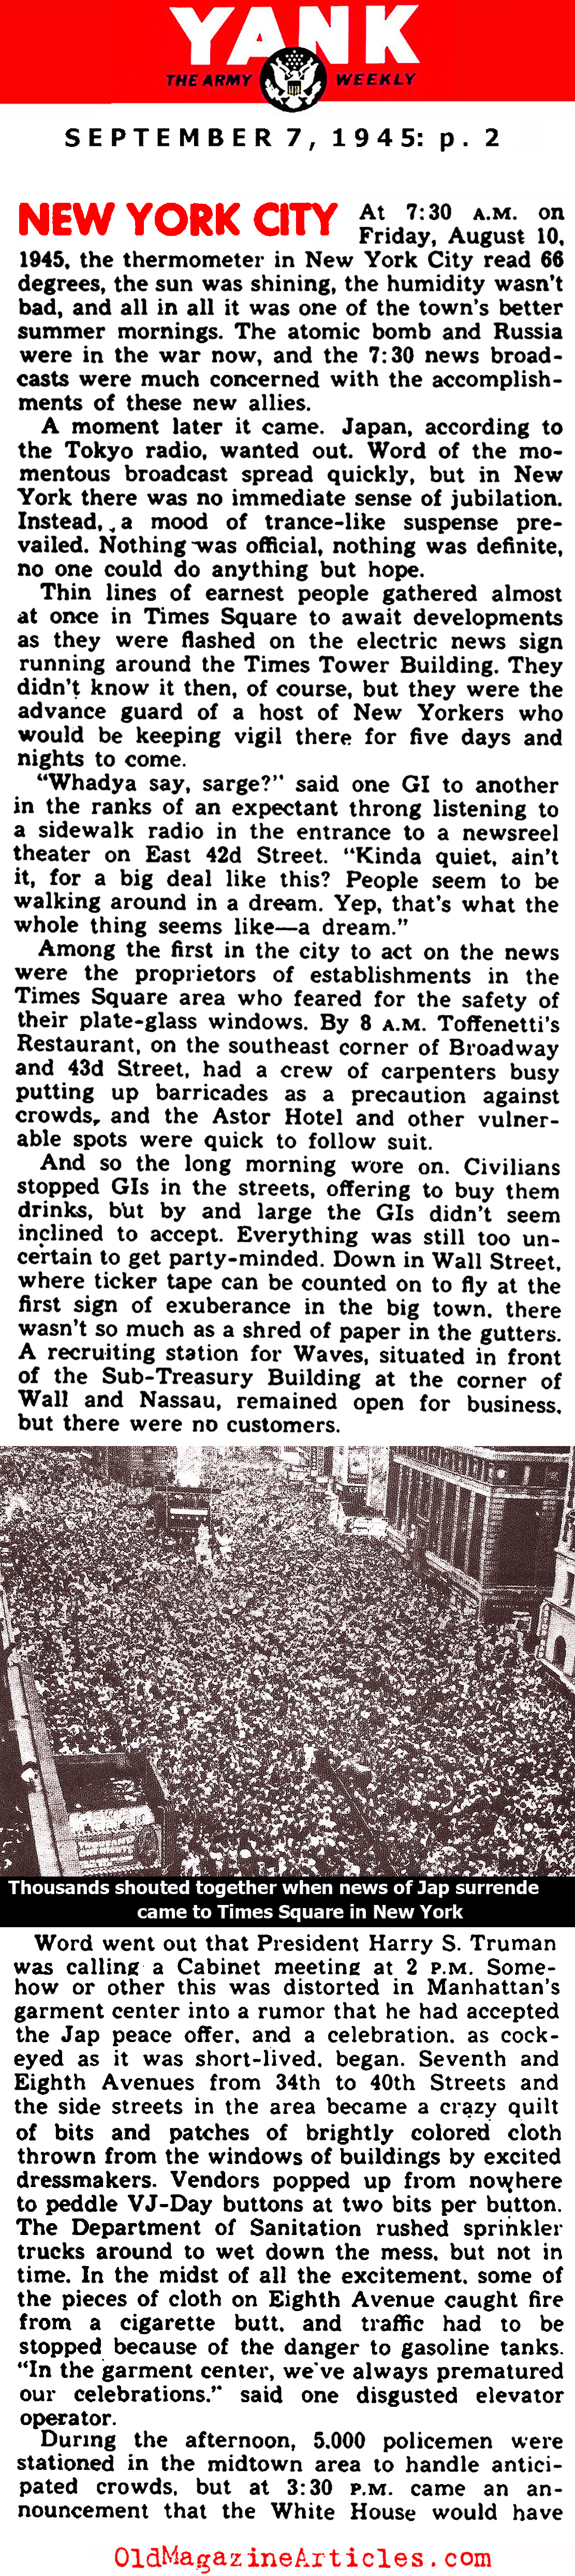 VJ Day in New York City (Yank Magazine, 1945)